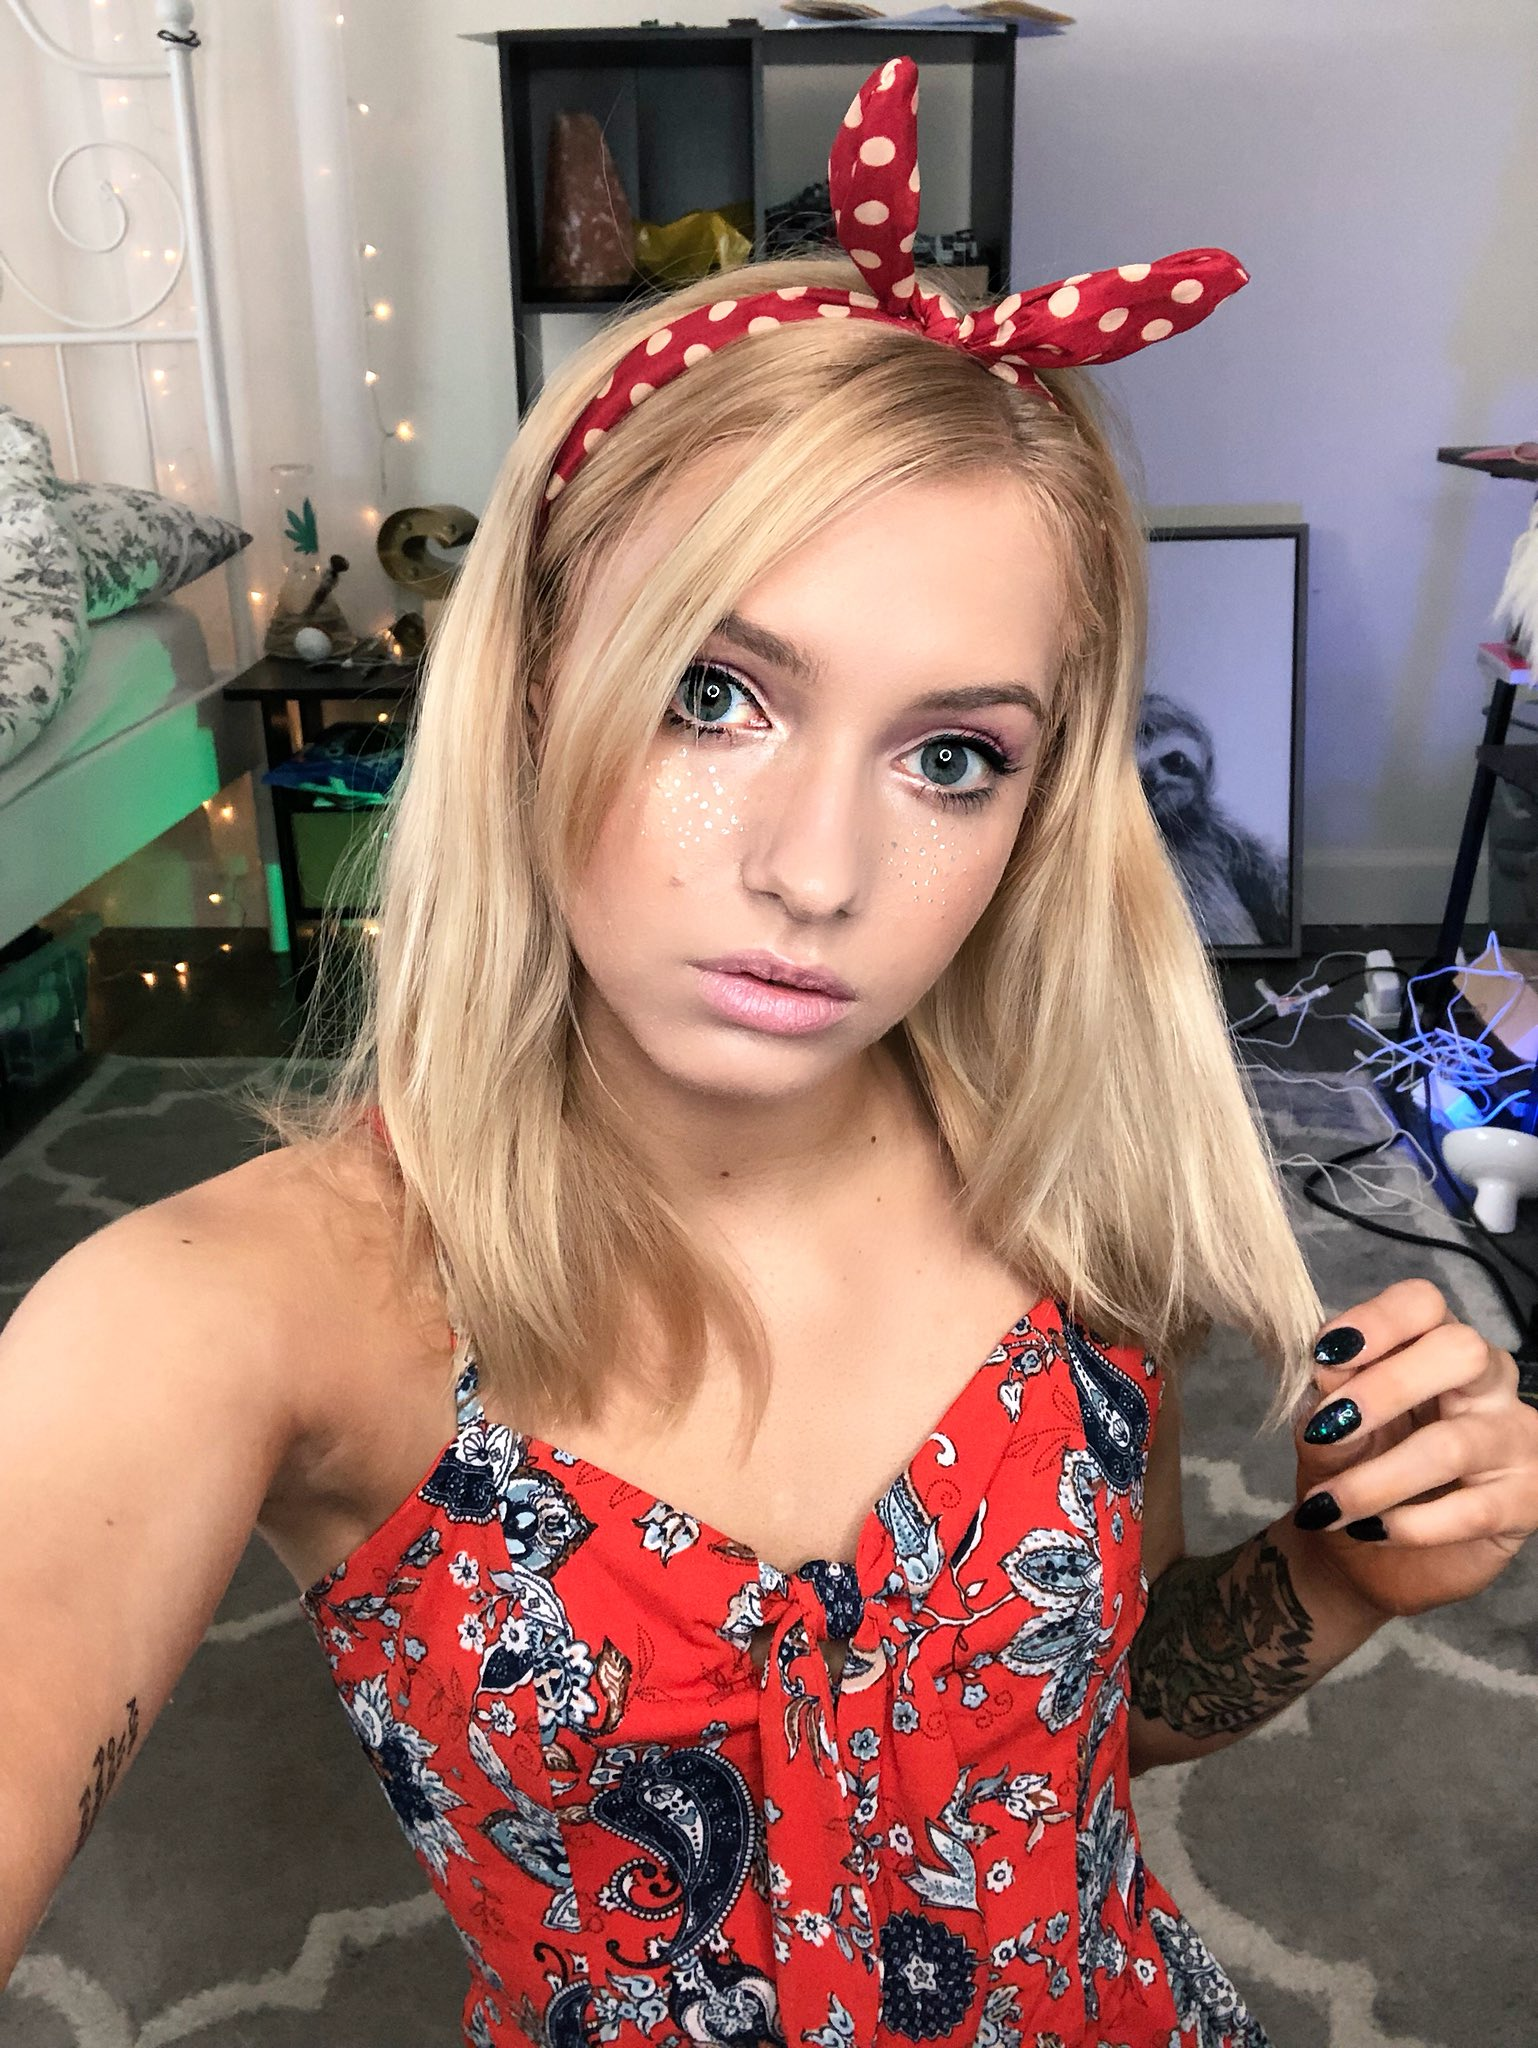 TheNovaStorm Chaturbate Cam Girl - Sexy Now Nude Teens